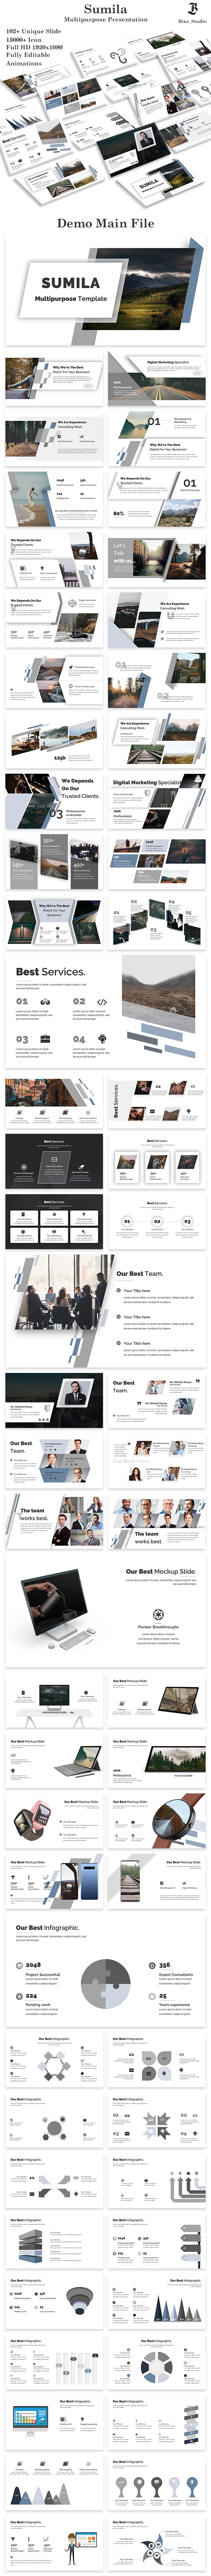 Sumila Multipurpose PowerPoint Template - Creative PowerPoint Templates